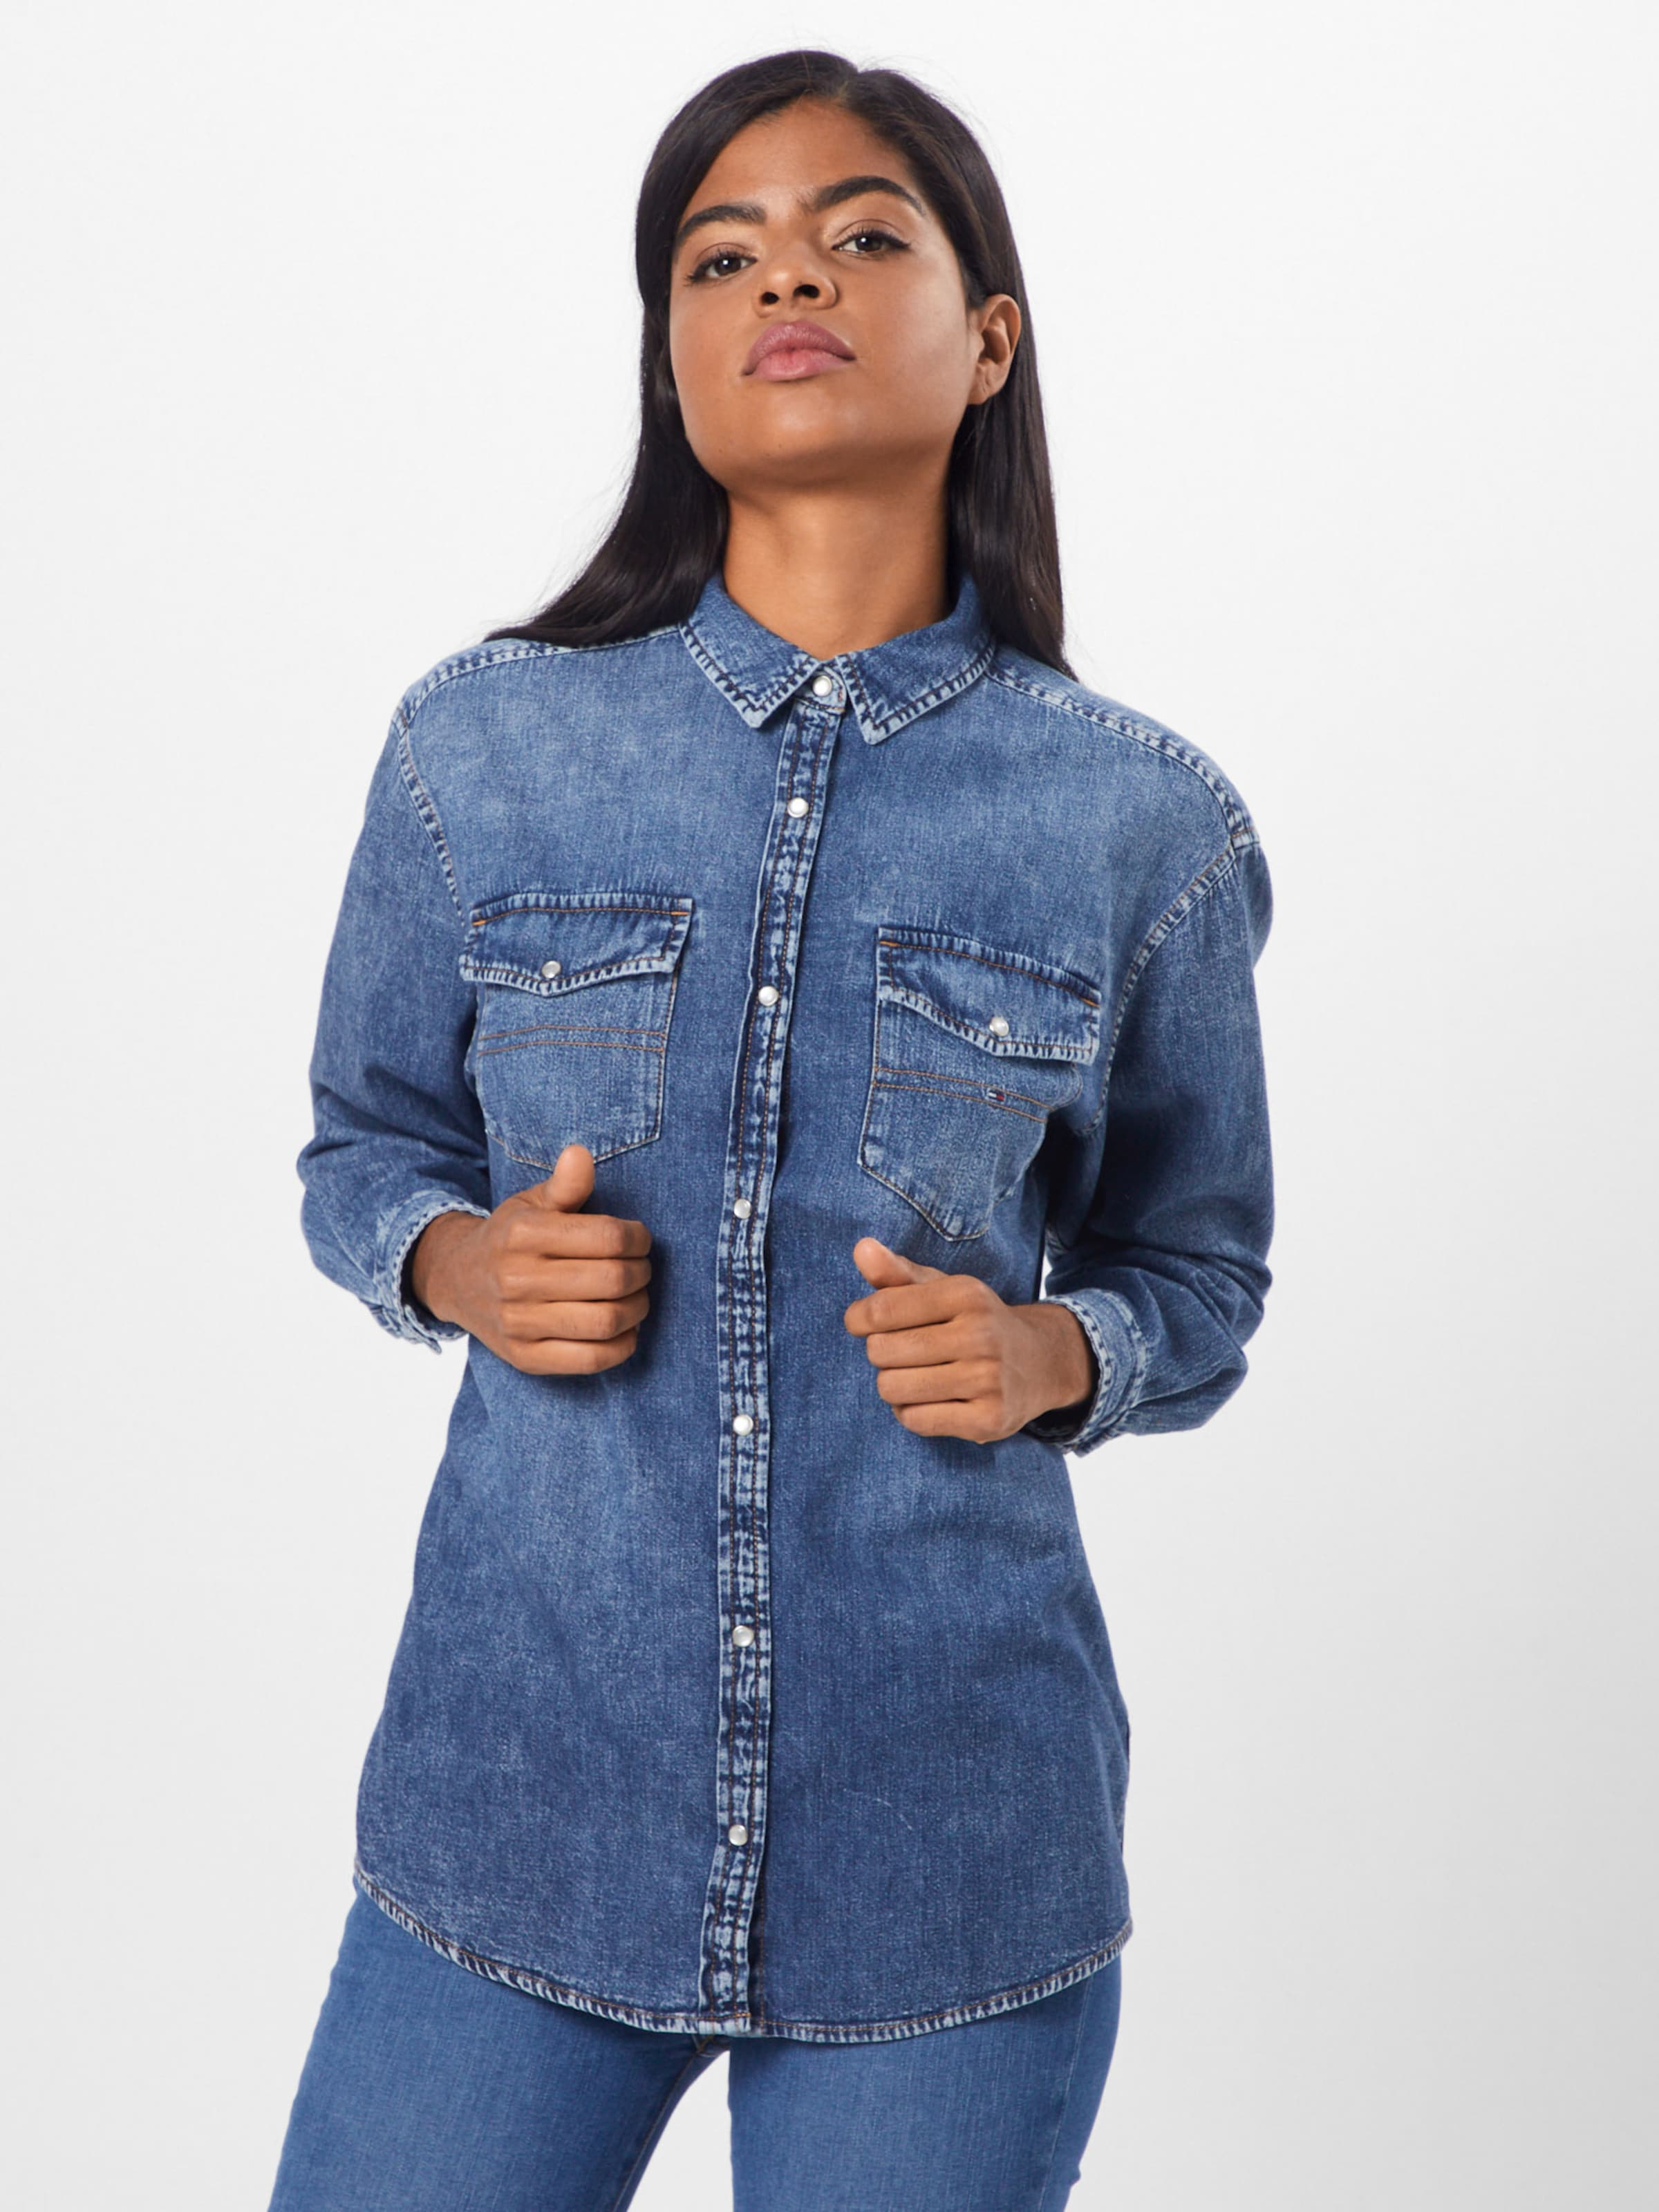 Jeans Jeansbluse Tommy In Blue Denim 8wOXk0nP